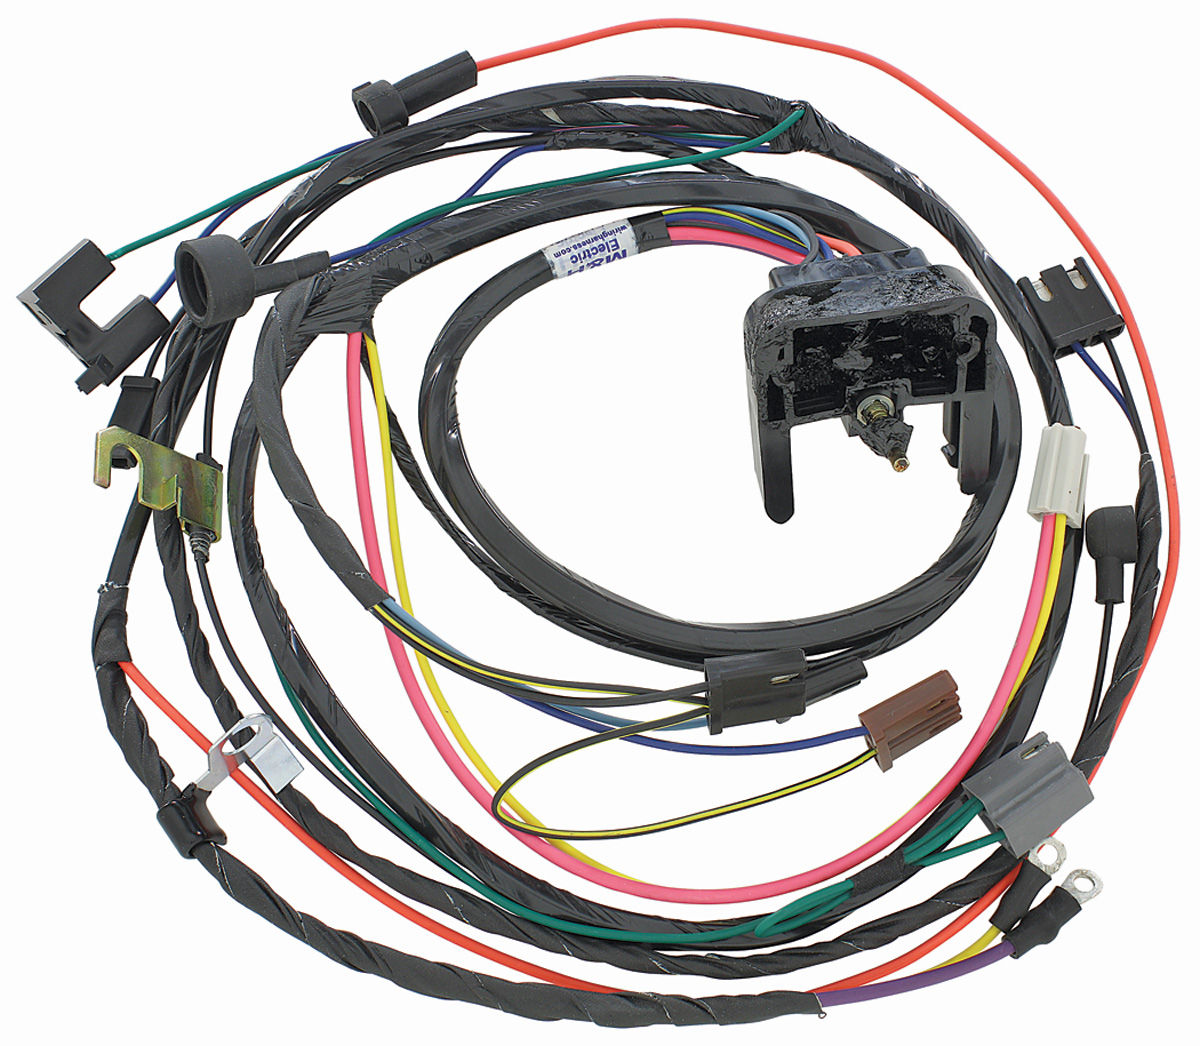 38931 lrg m&h 1970 chevelle engine harness 396 454 hei w manual trans 1970 chevelle engine wiring harness at n-0.co